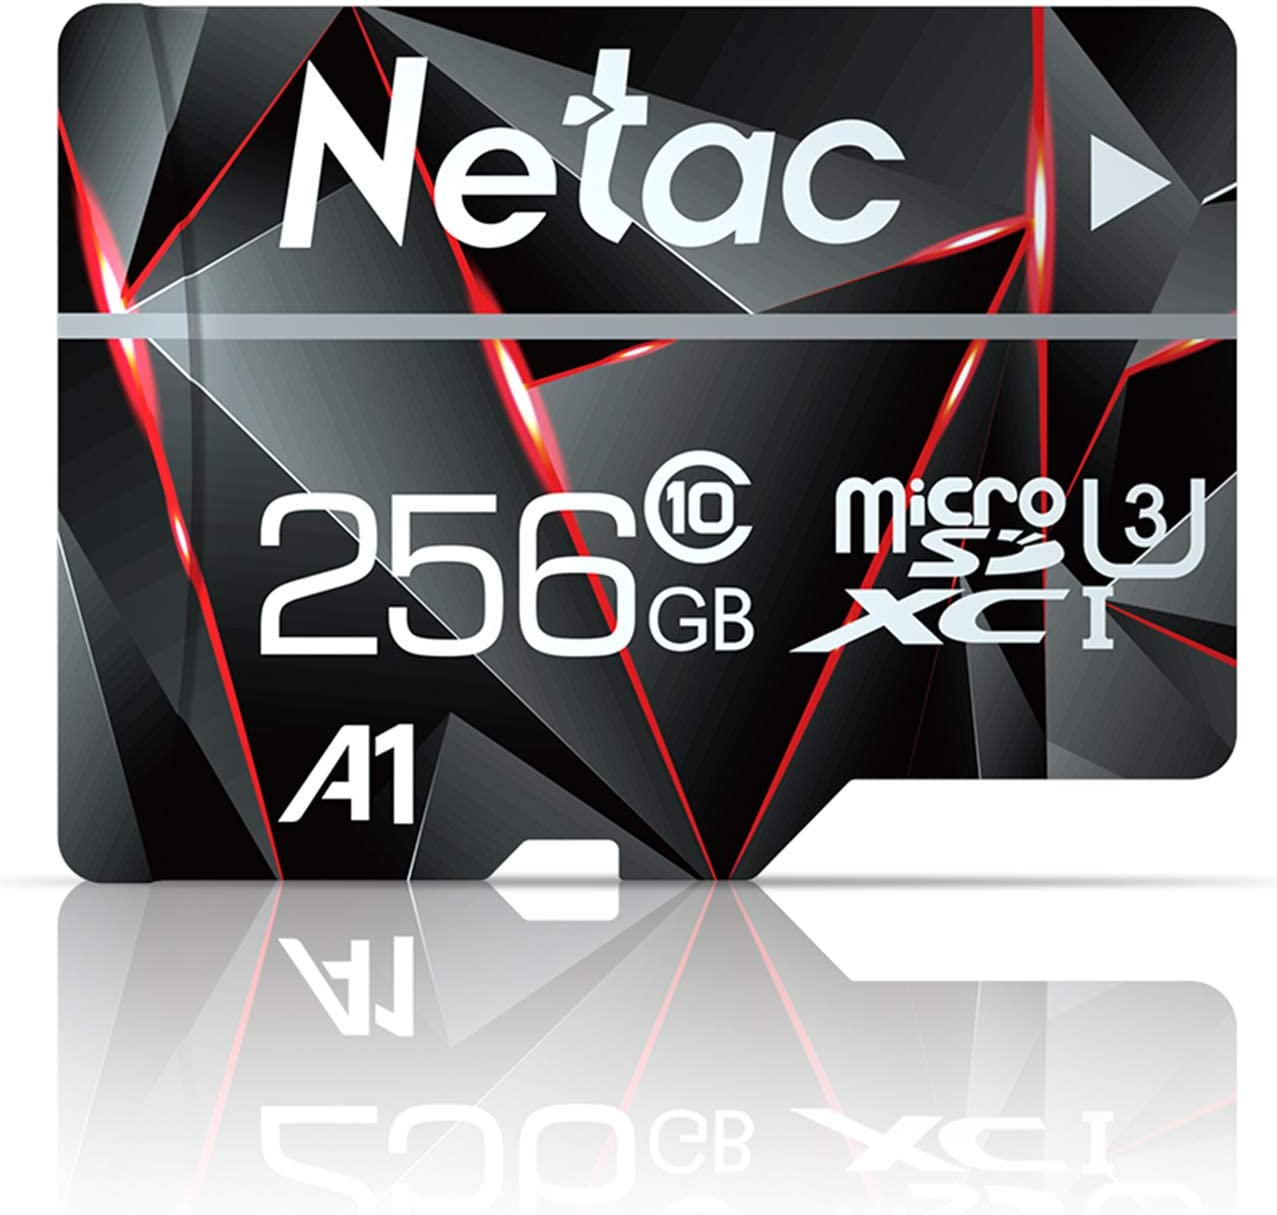 netac microsd card for switch gaming console